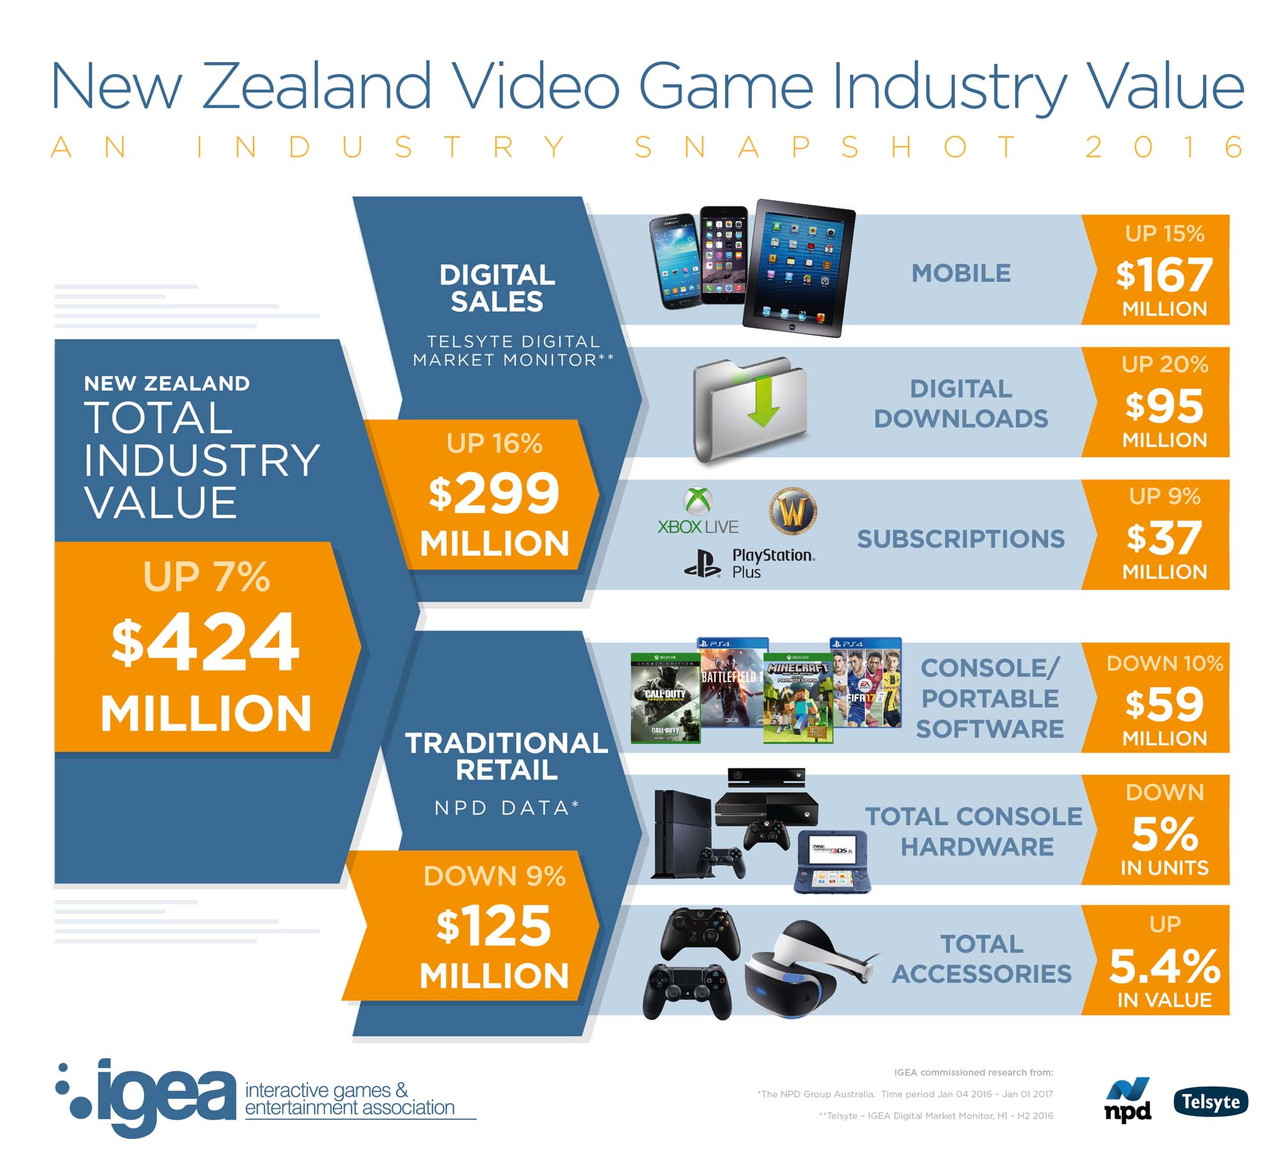 NZ's shift to digital games continues, revenues hit $424m